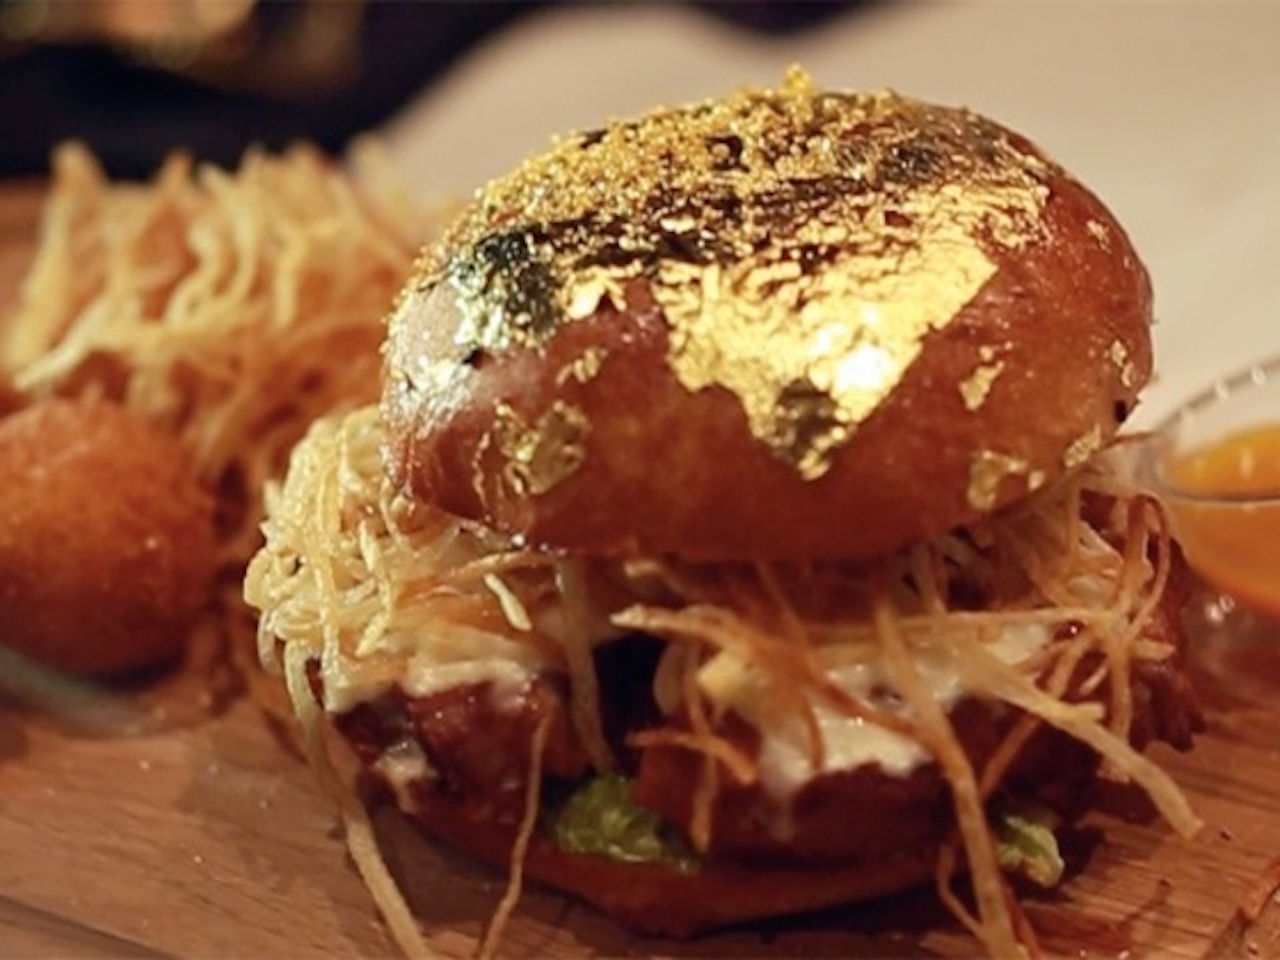 The One & Only Ossobuco Burger at 24 Karat